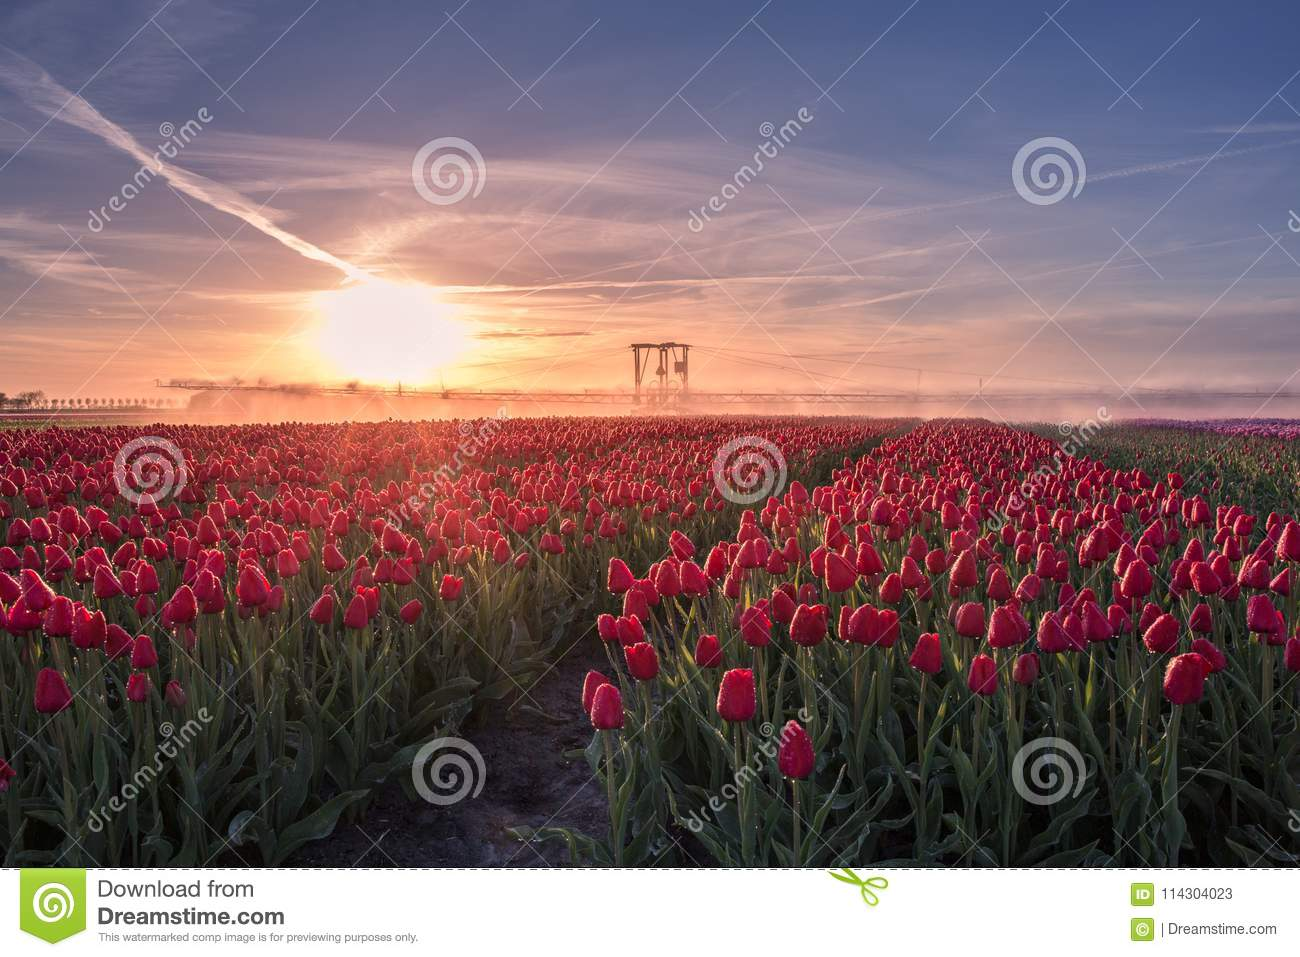 Red tulips farm landscape with sprinkler system other perspective